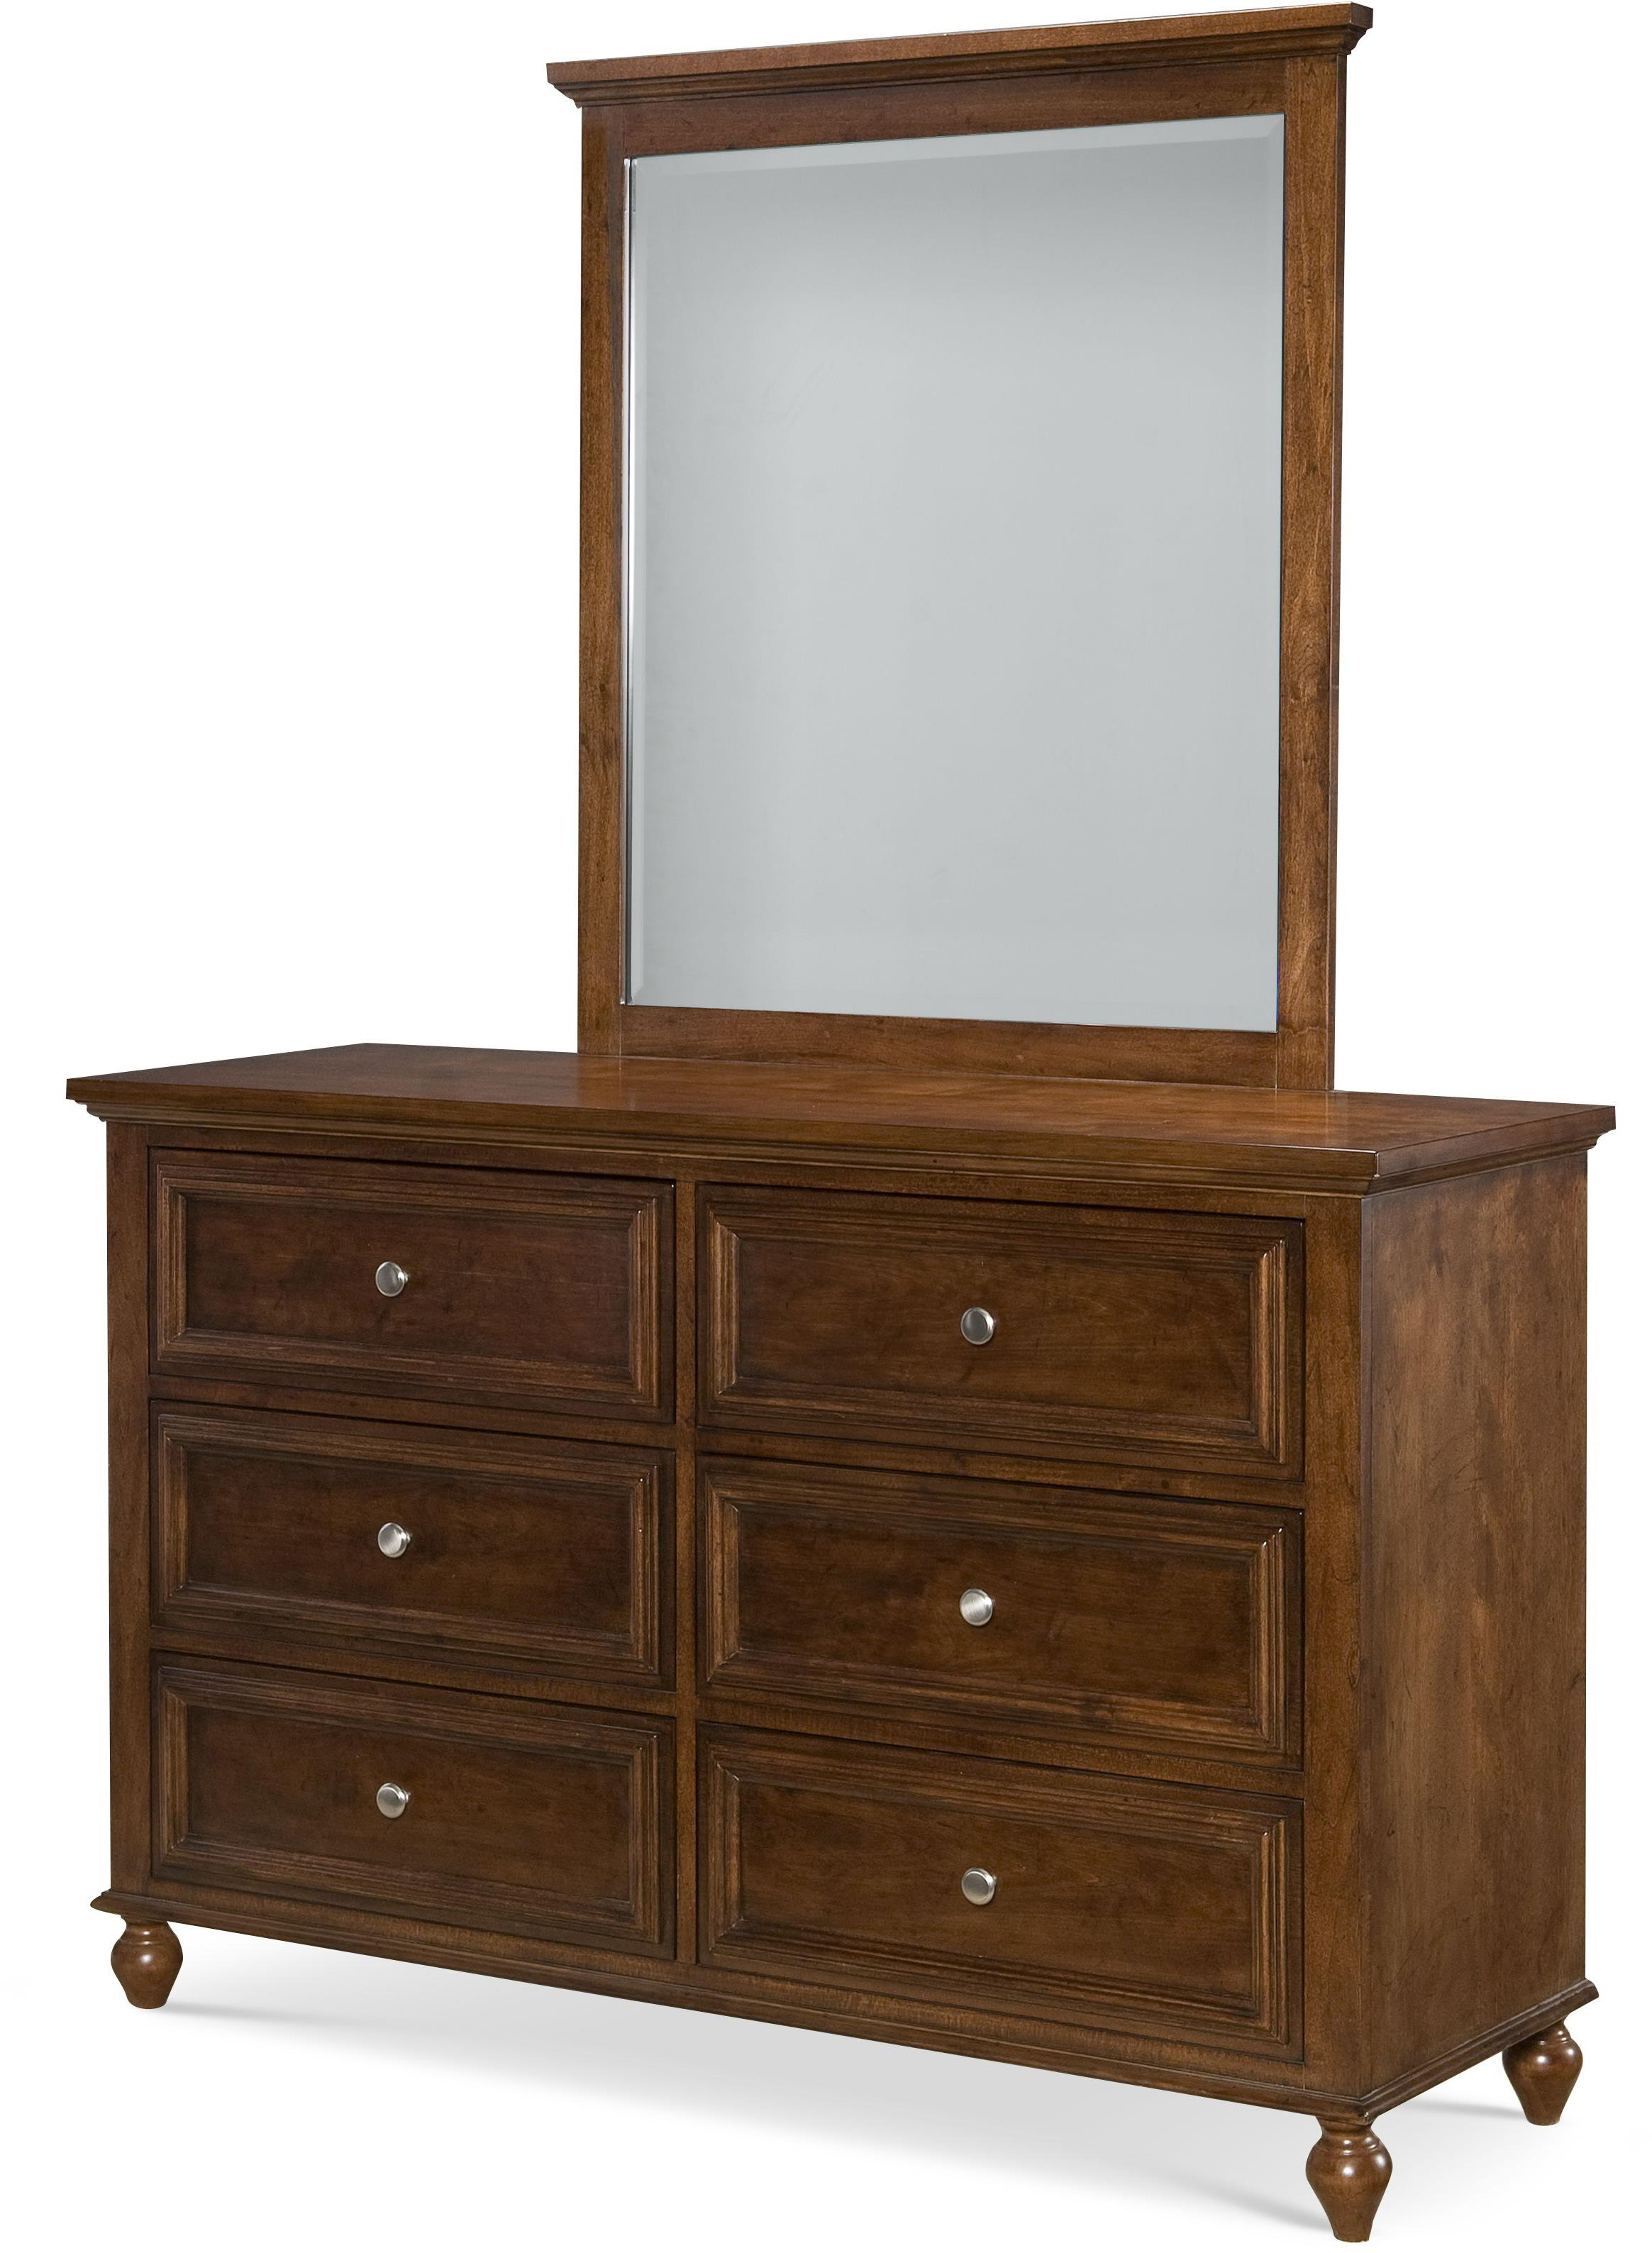 Legacy Classic Kids Academy Dresser and Mirror Set - Item Number: 5812-1100+0100